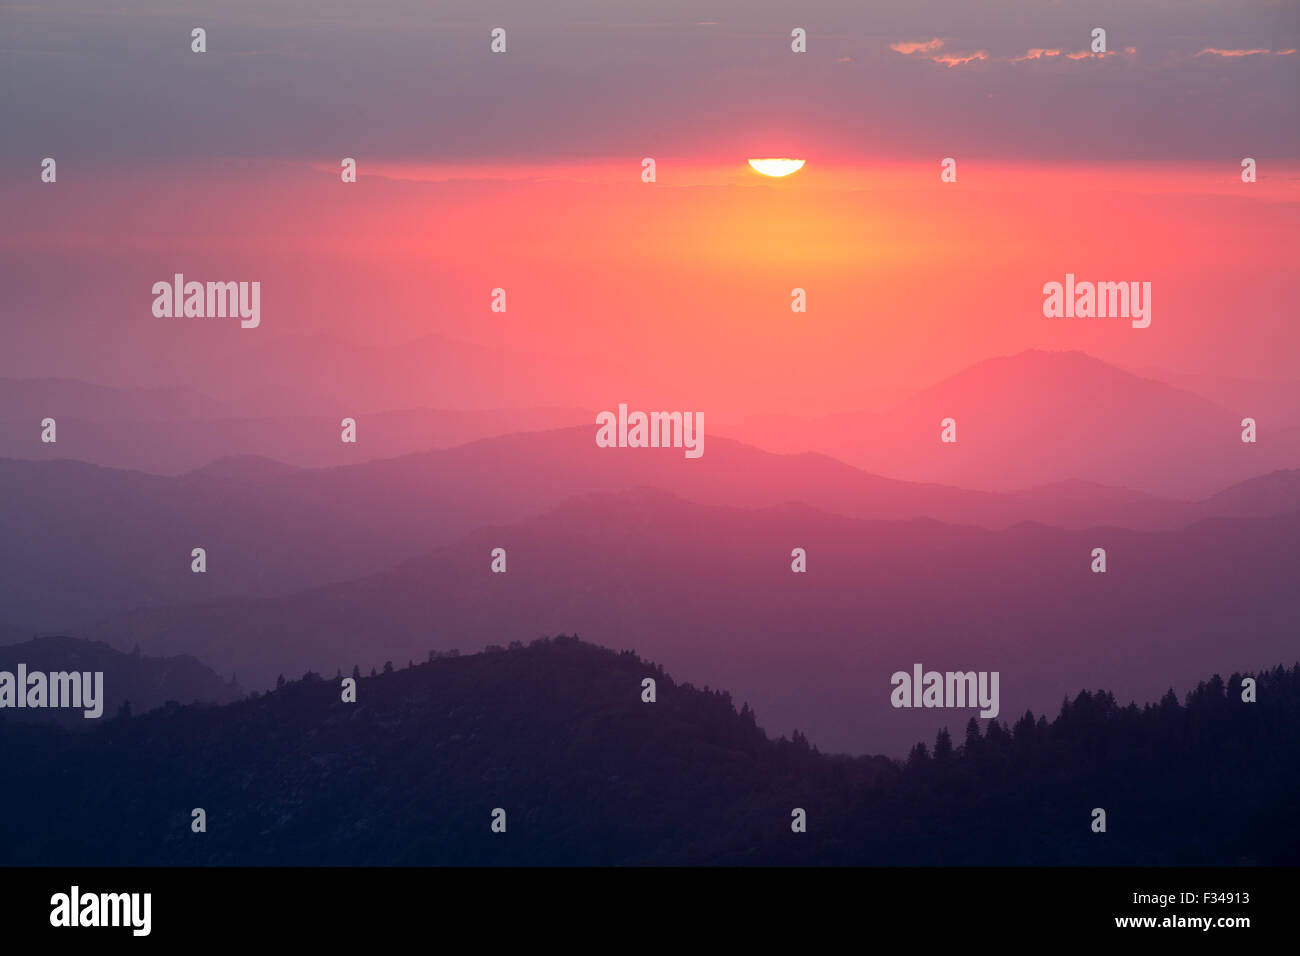 sunset over the Sierra Nevada from Moro Rock, Sequoia National Park, California, USA - Stock Image